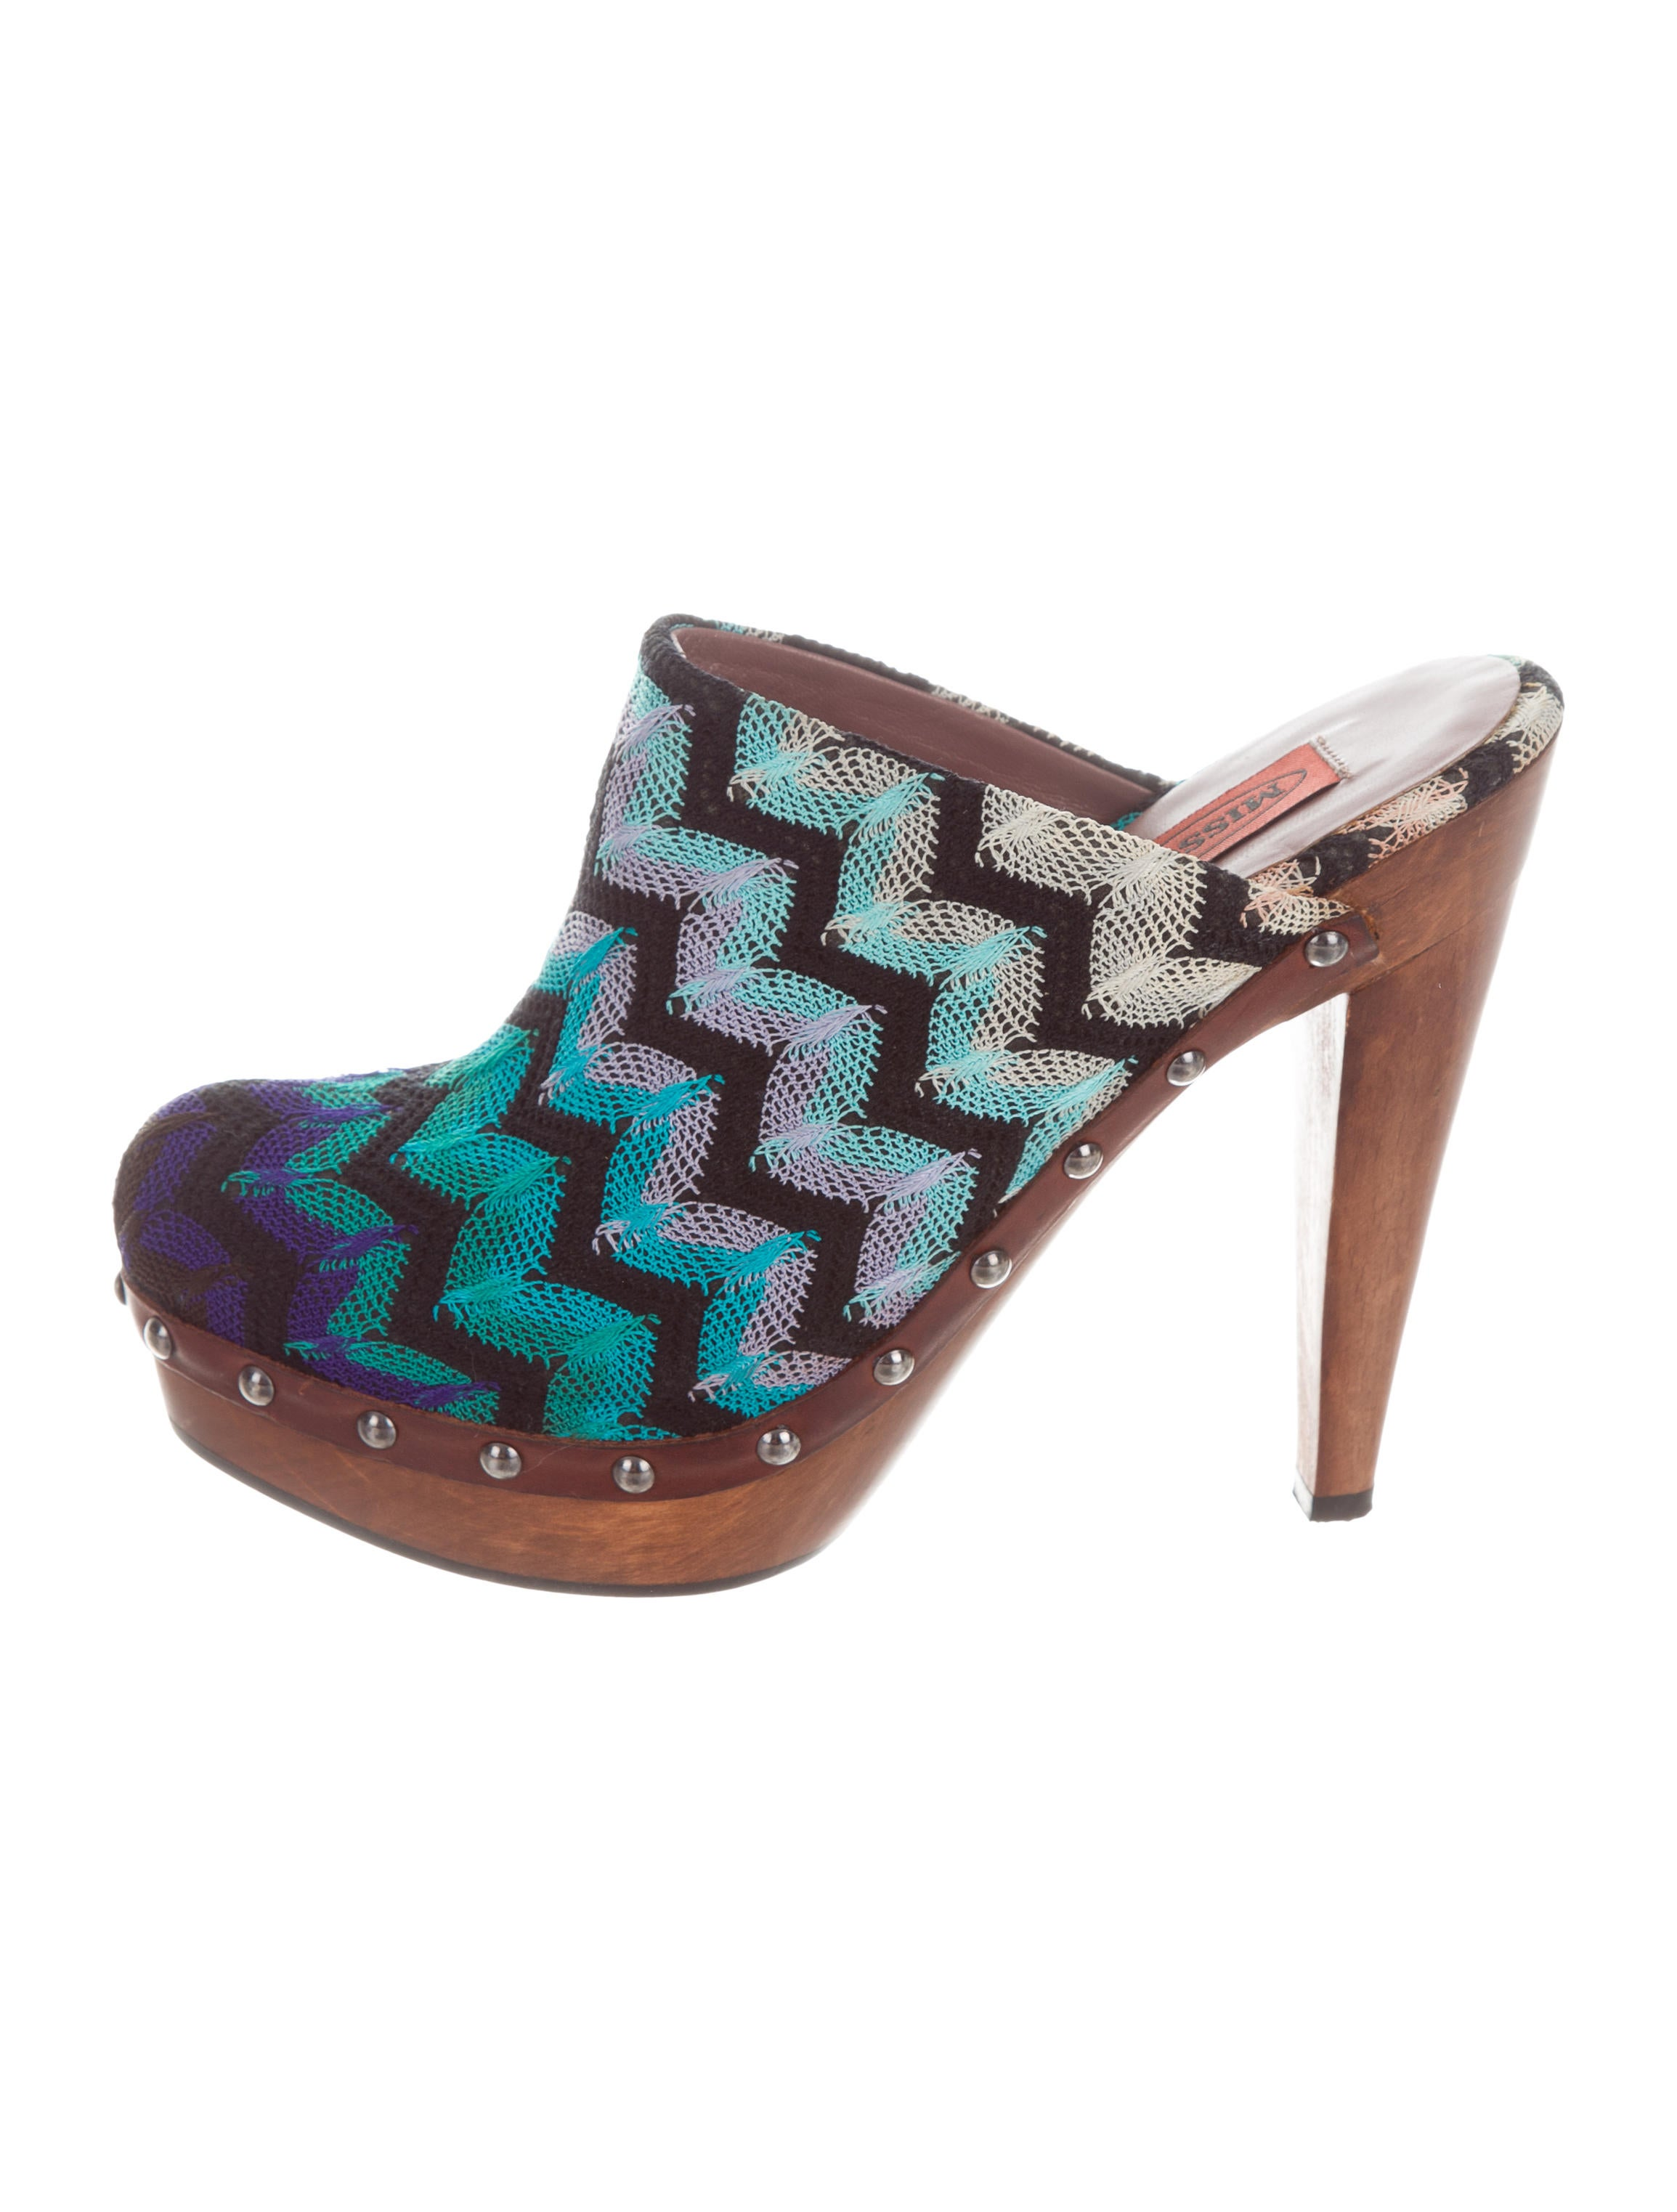 outlet new styles Missoni Chevron Patterned Clogs sale exclusive sale in China R32AHRG1